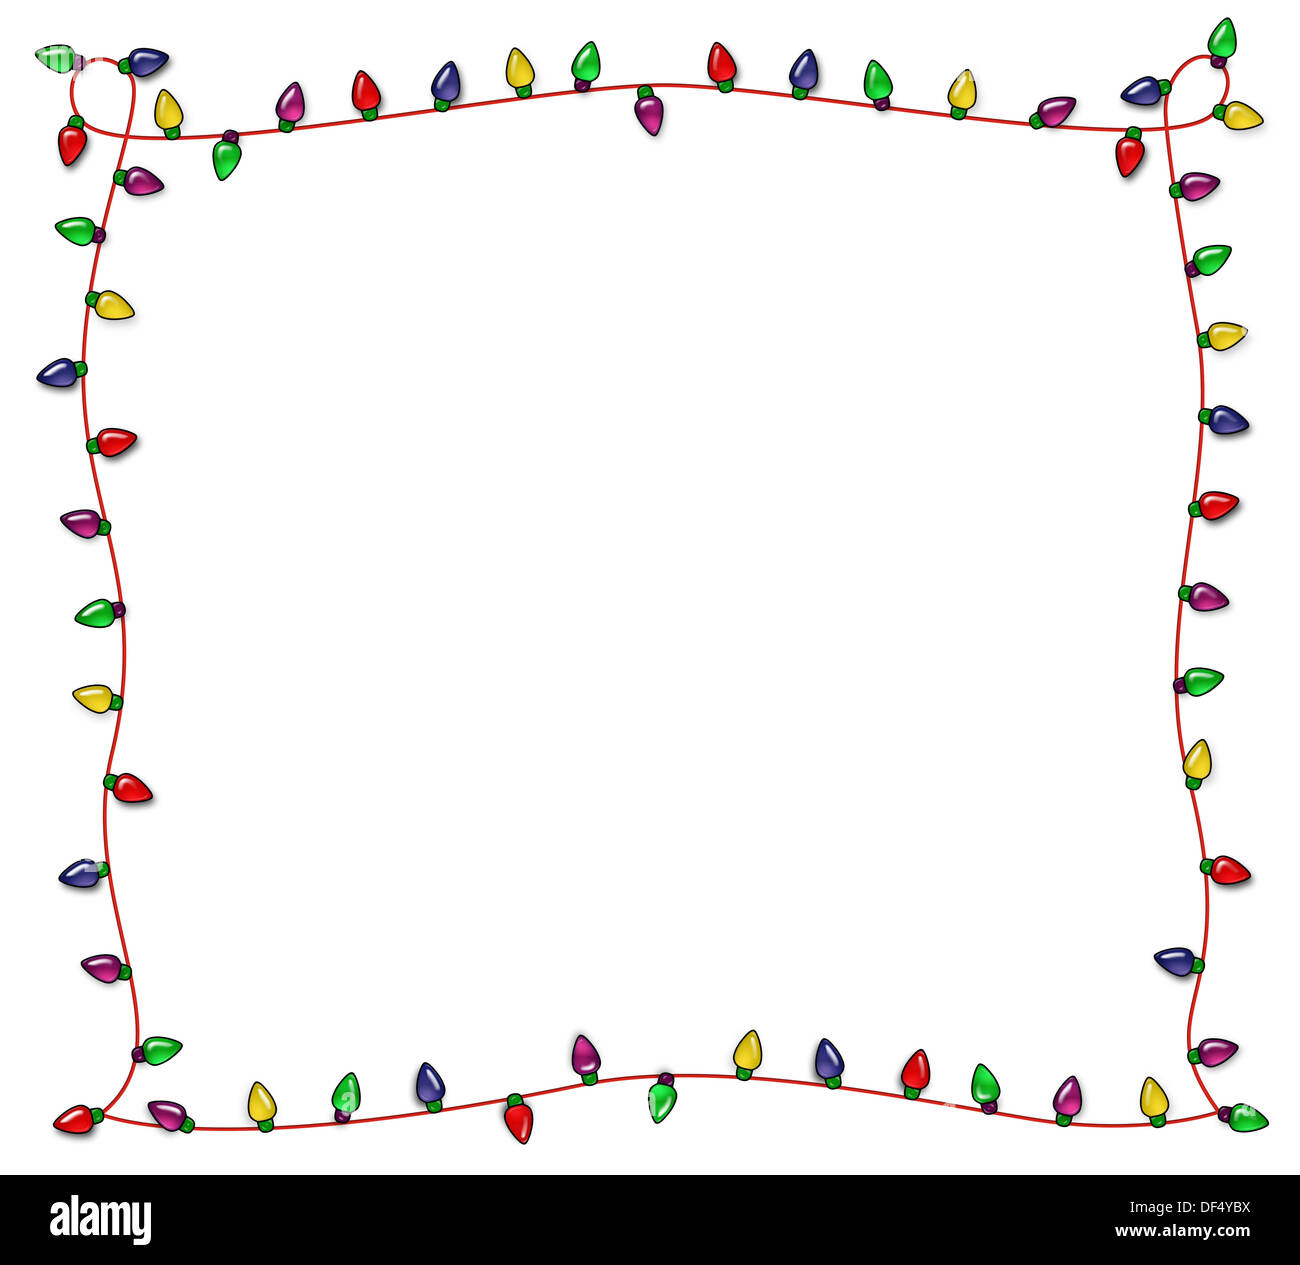 Colorful Cute Frame of Christmas Lights Stock Photo: 60960254 - Alamy